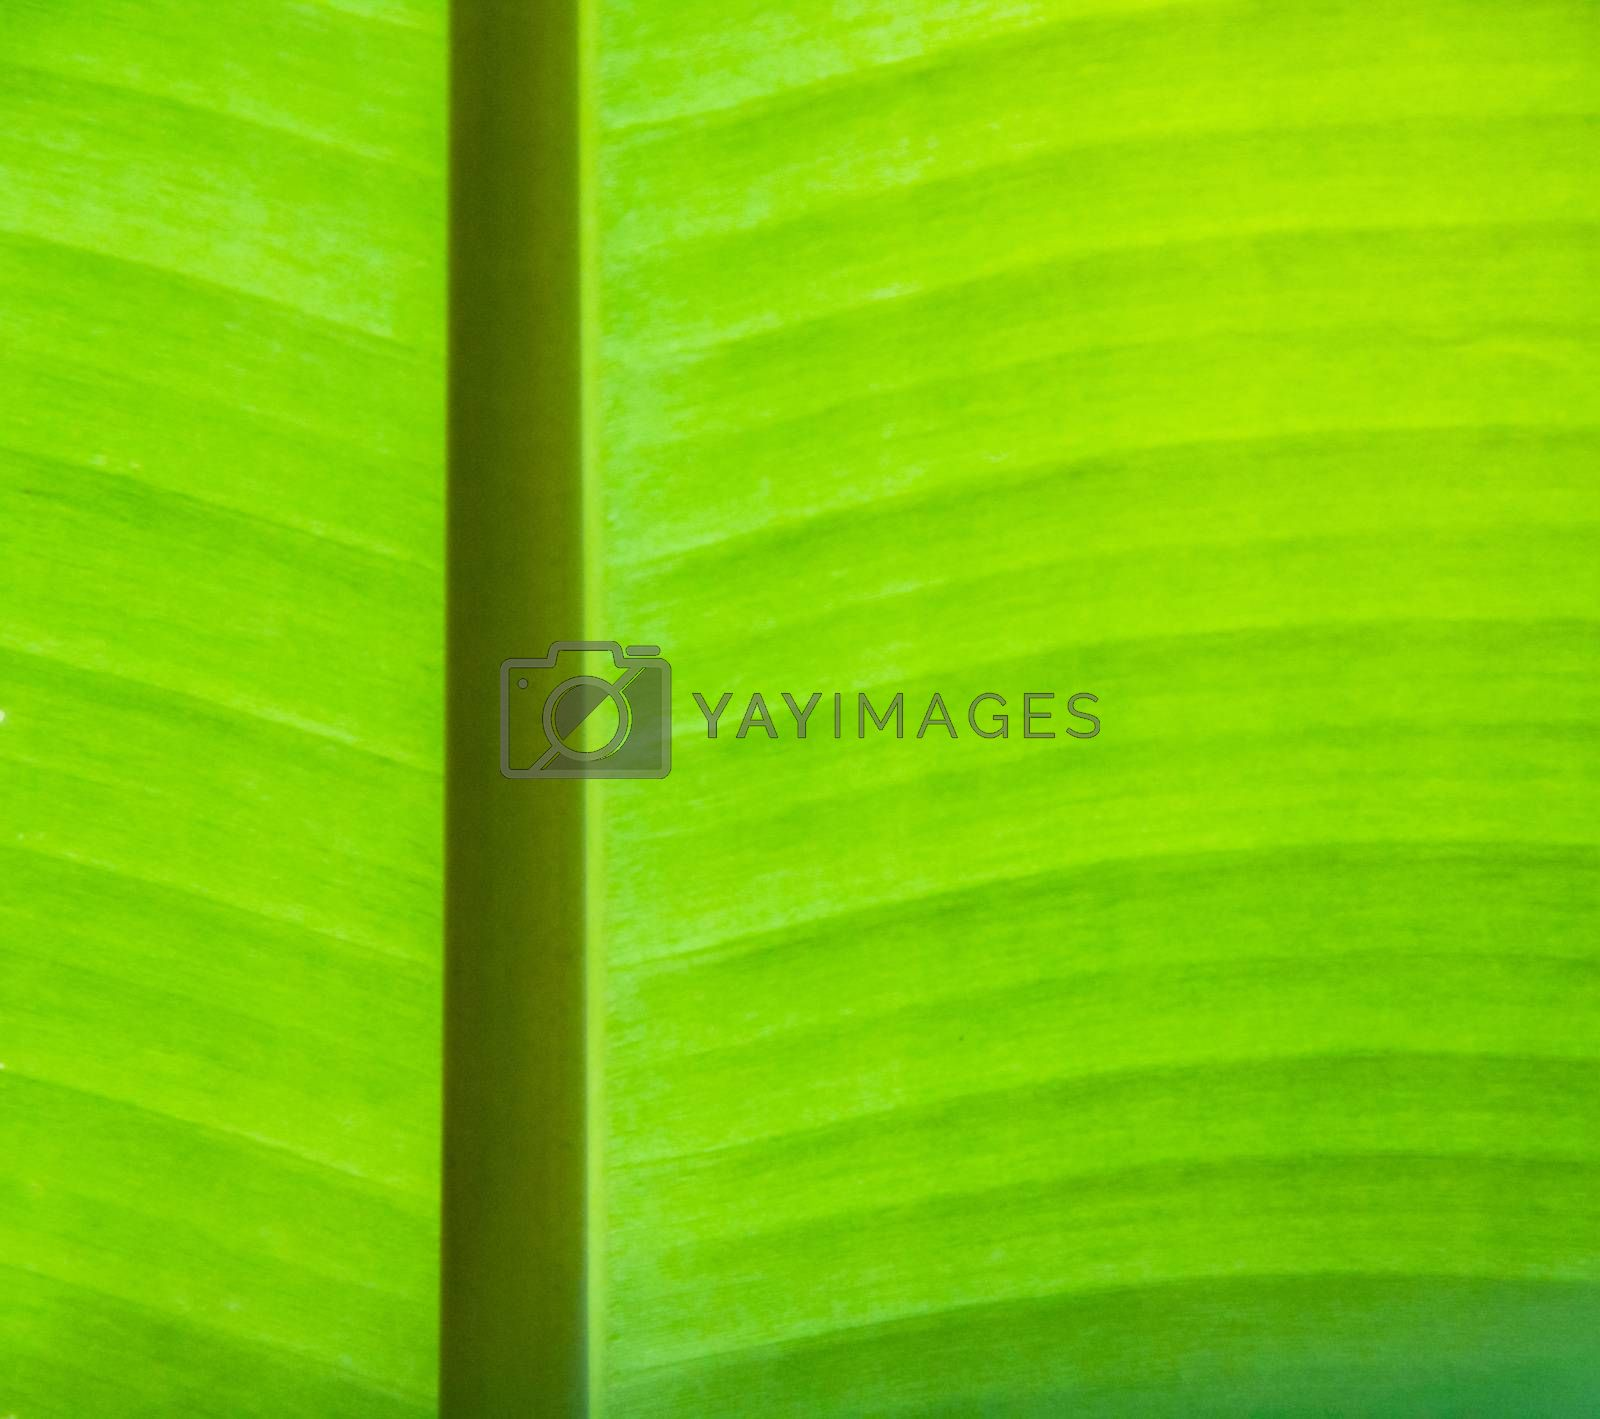 Banana leaf background by liewluck